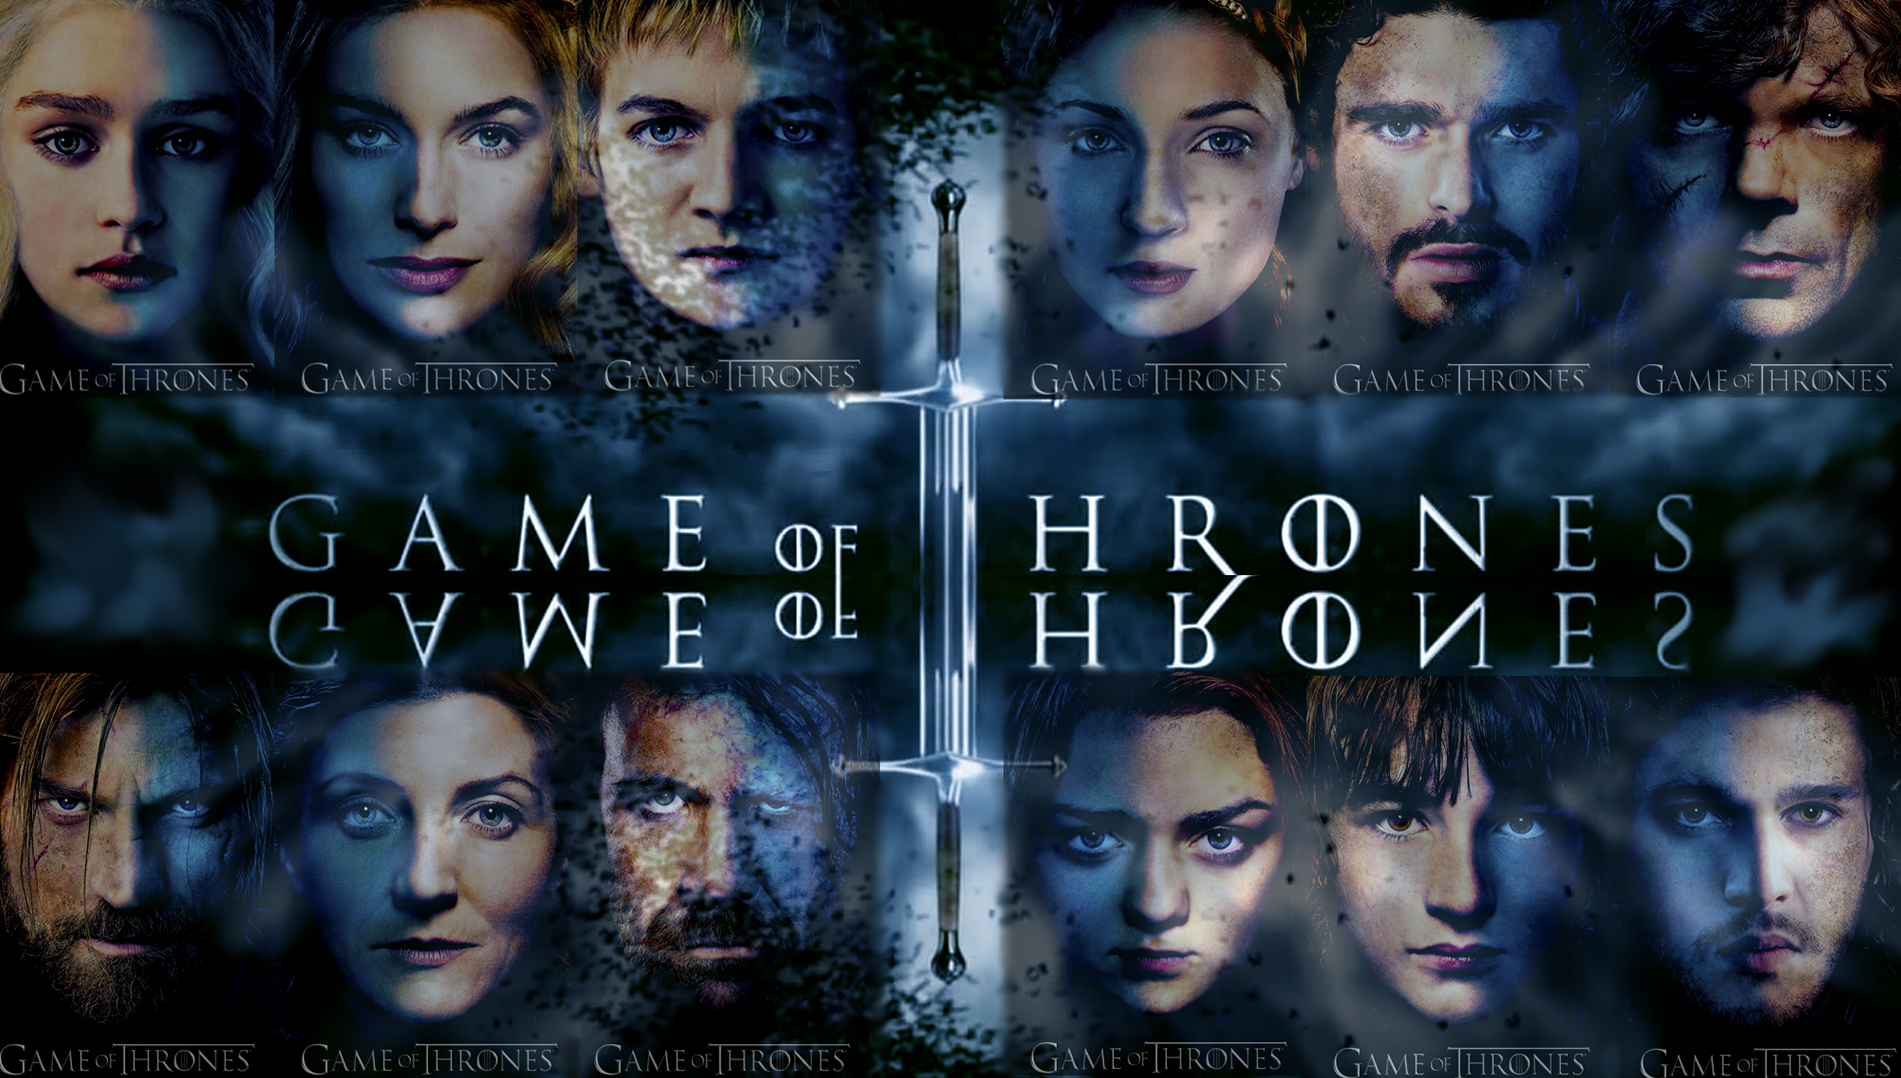 12 Stars of The Game of Thrones